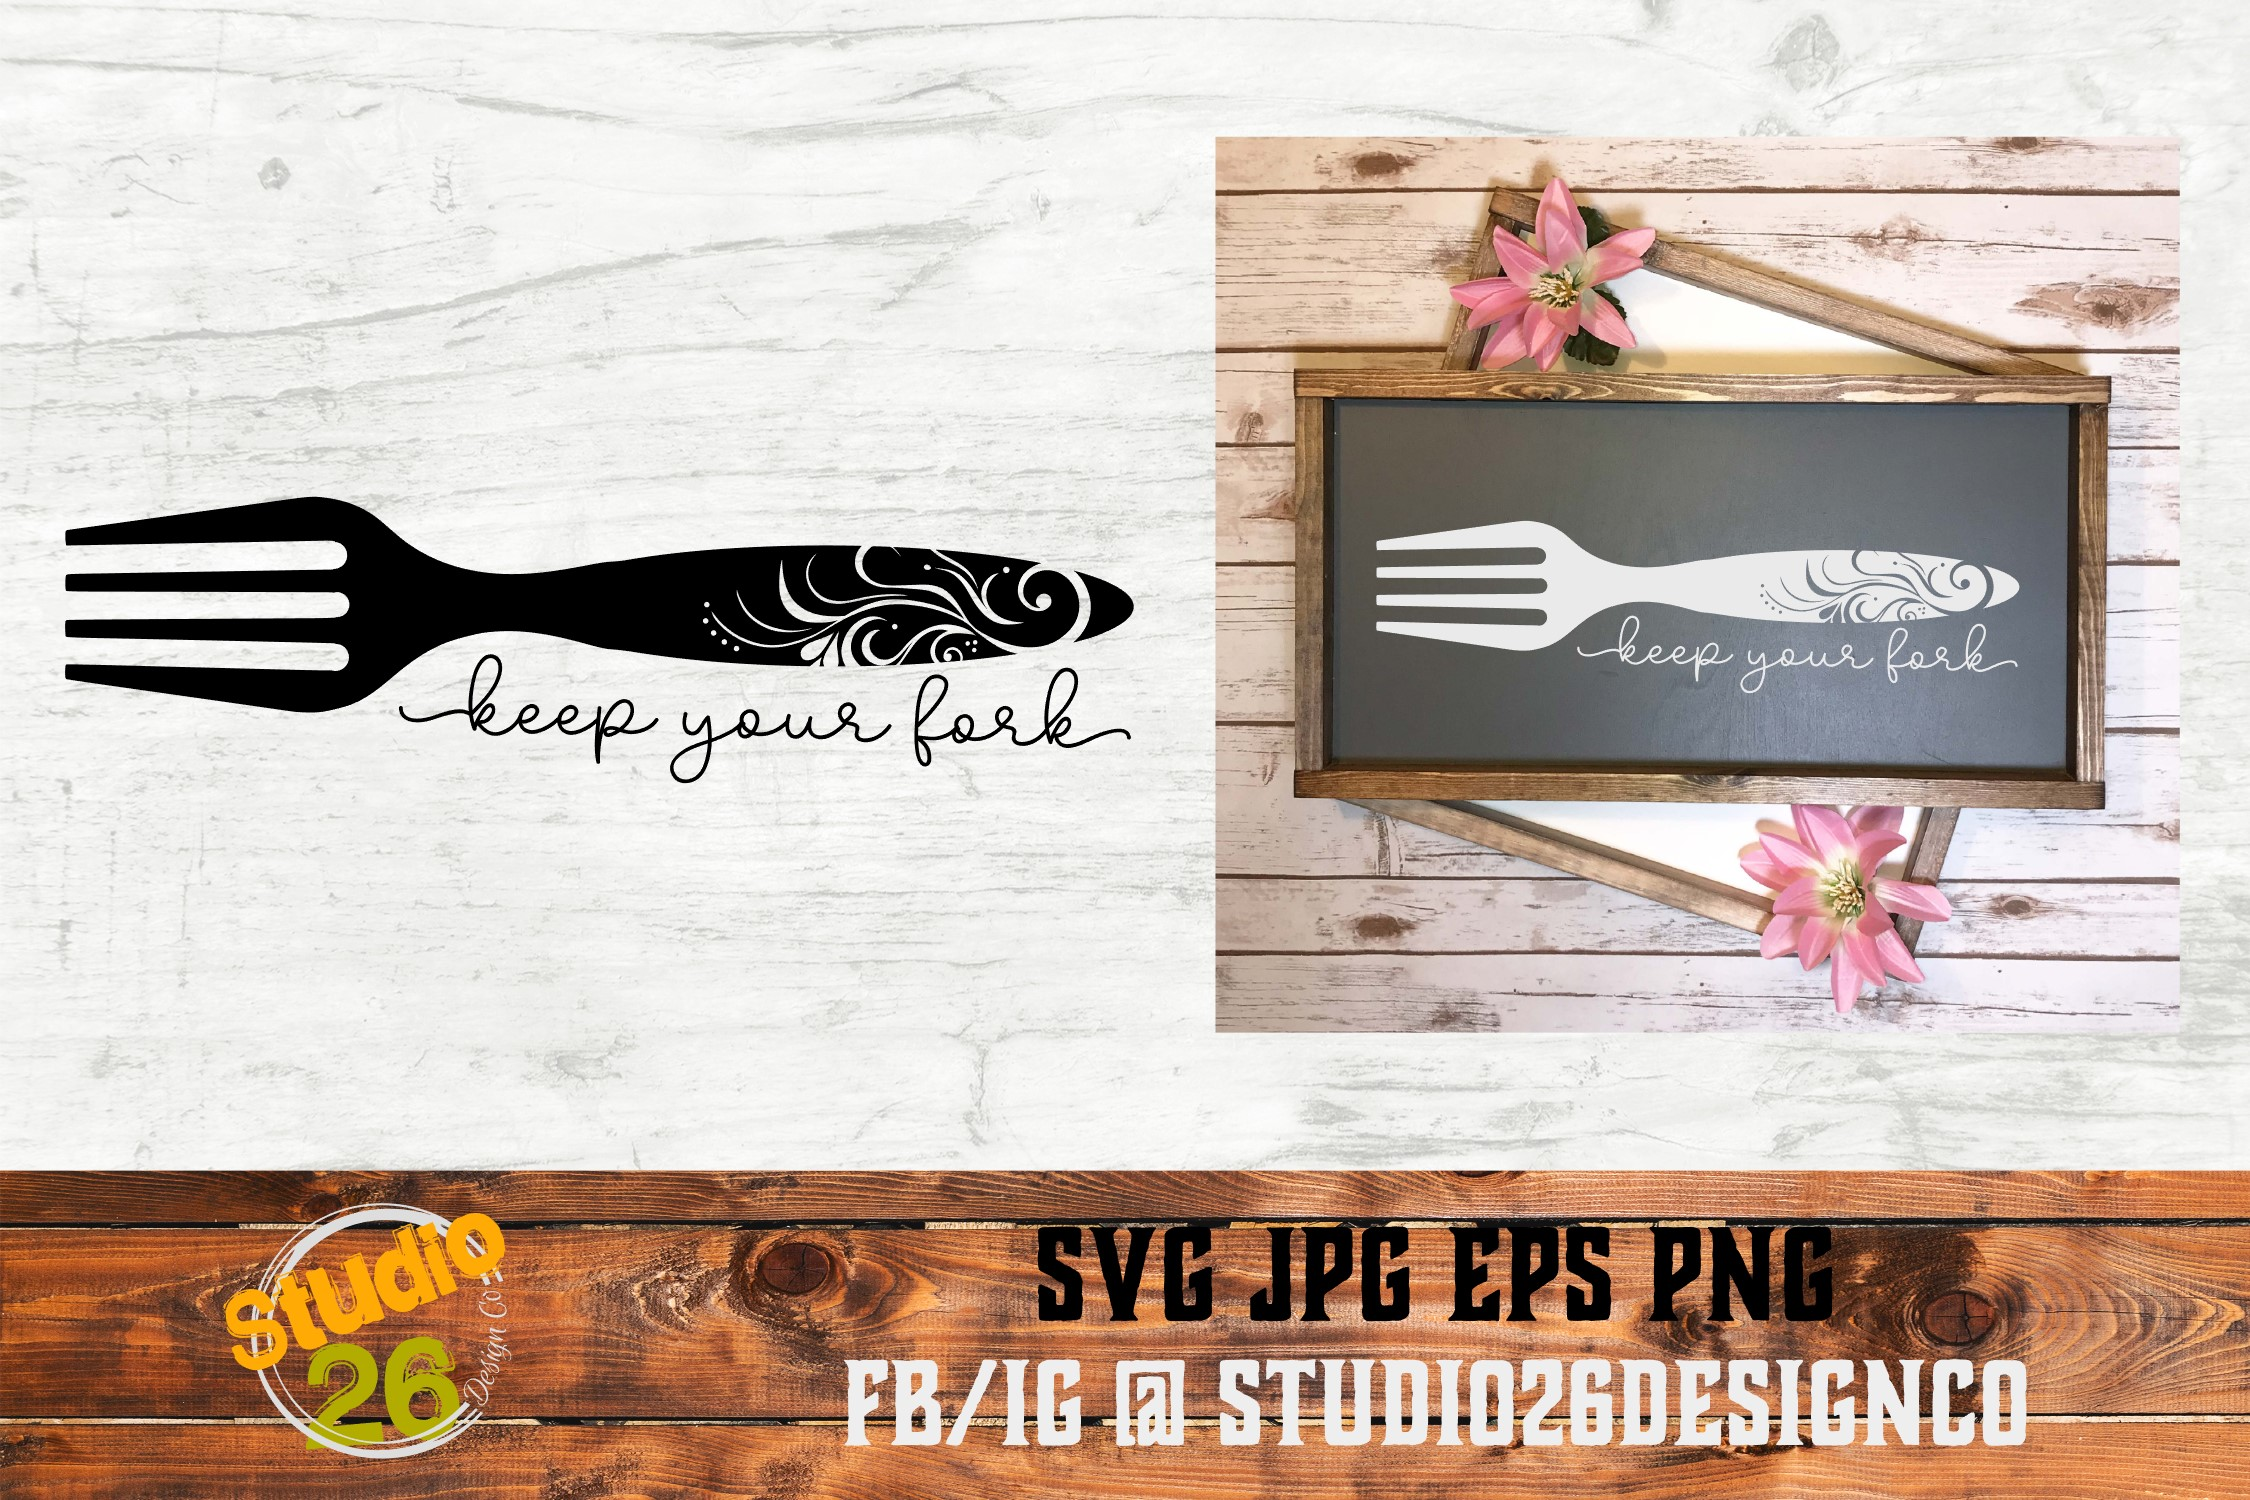 Download Free Keep Your Fork Graphic By Studio 26 Design Co Creative Fabrica for Cricut Explore, Silhouette and other cutting machines.